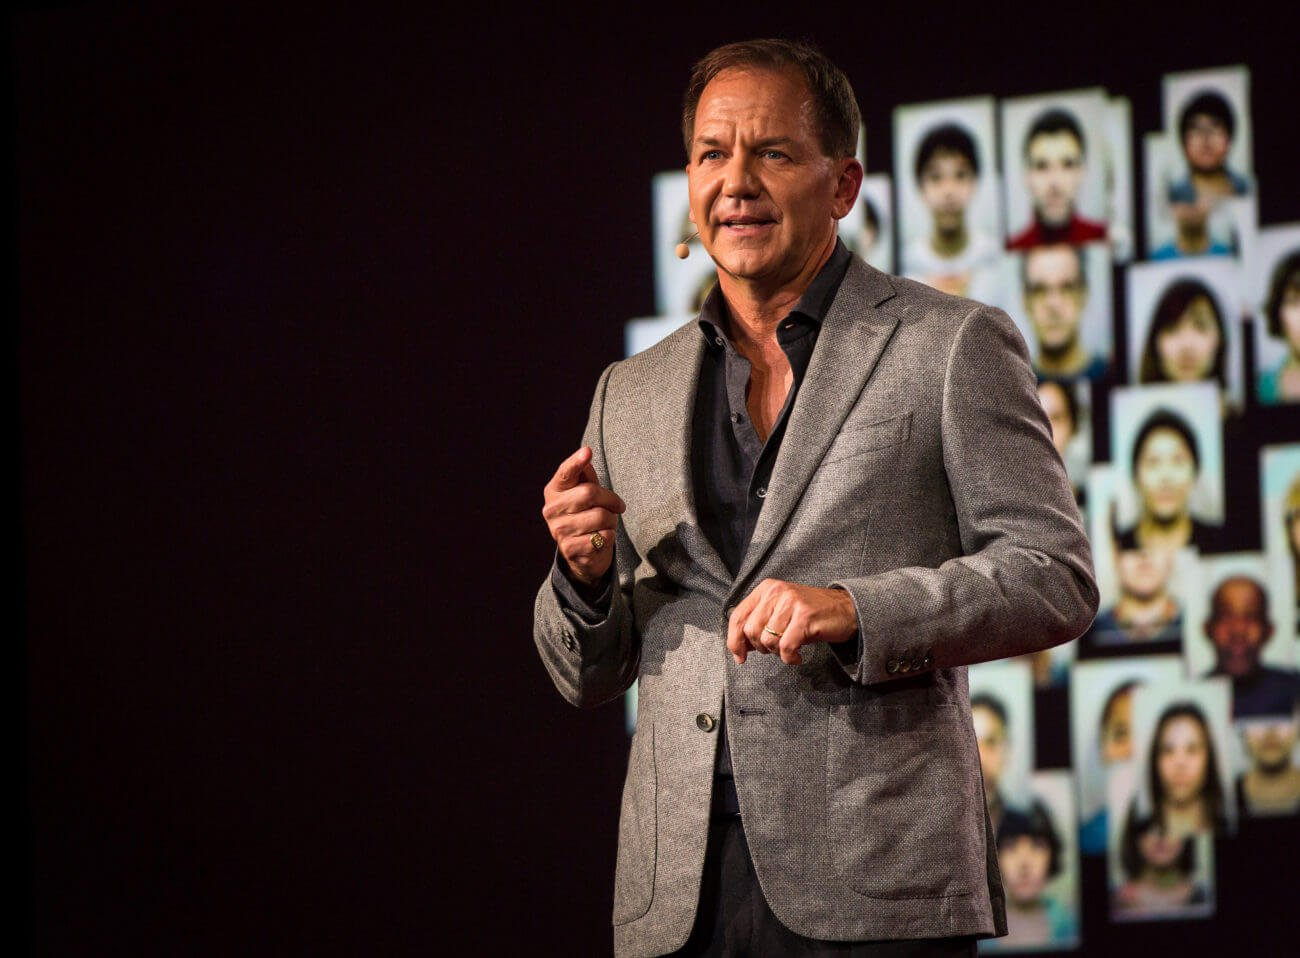 Billionaire Paul Tudor Jones Needs To Compile His Myth Straight On Bitcoin